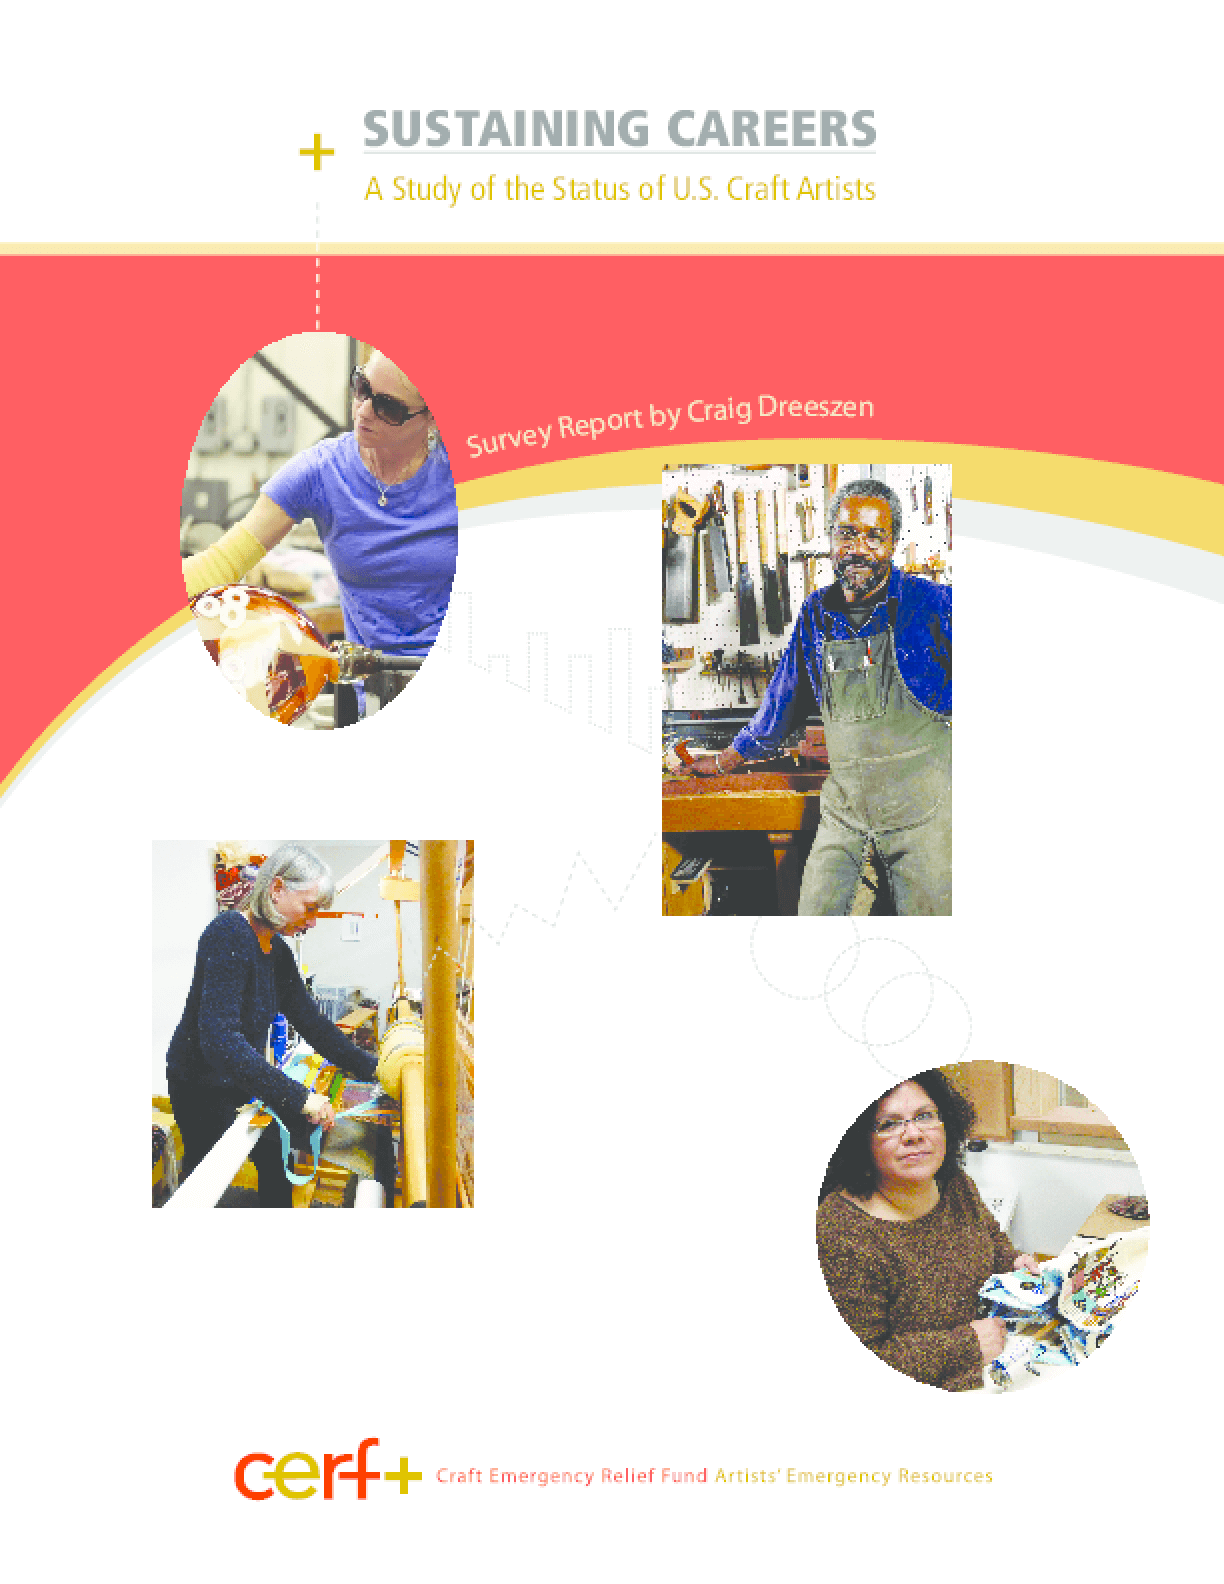 Sustaining Careers: A Study of the Status of U.S. Craft Artists